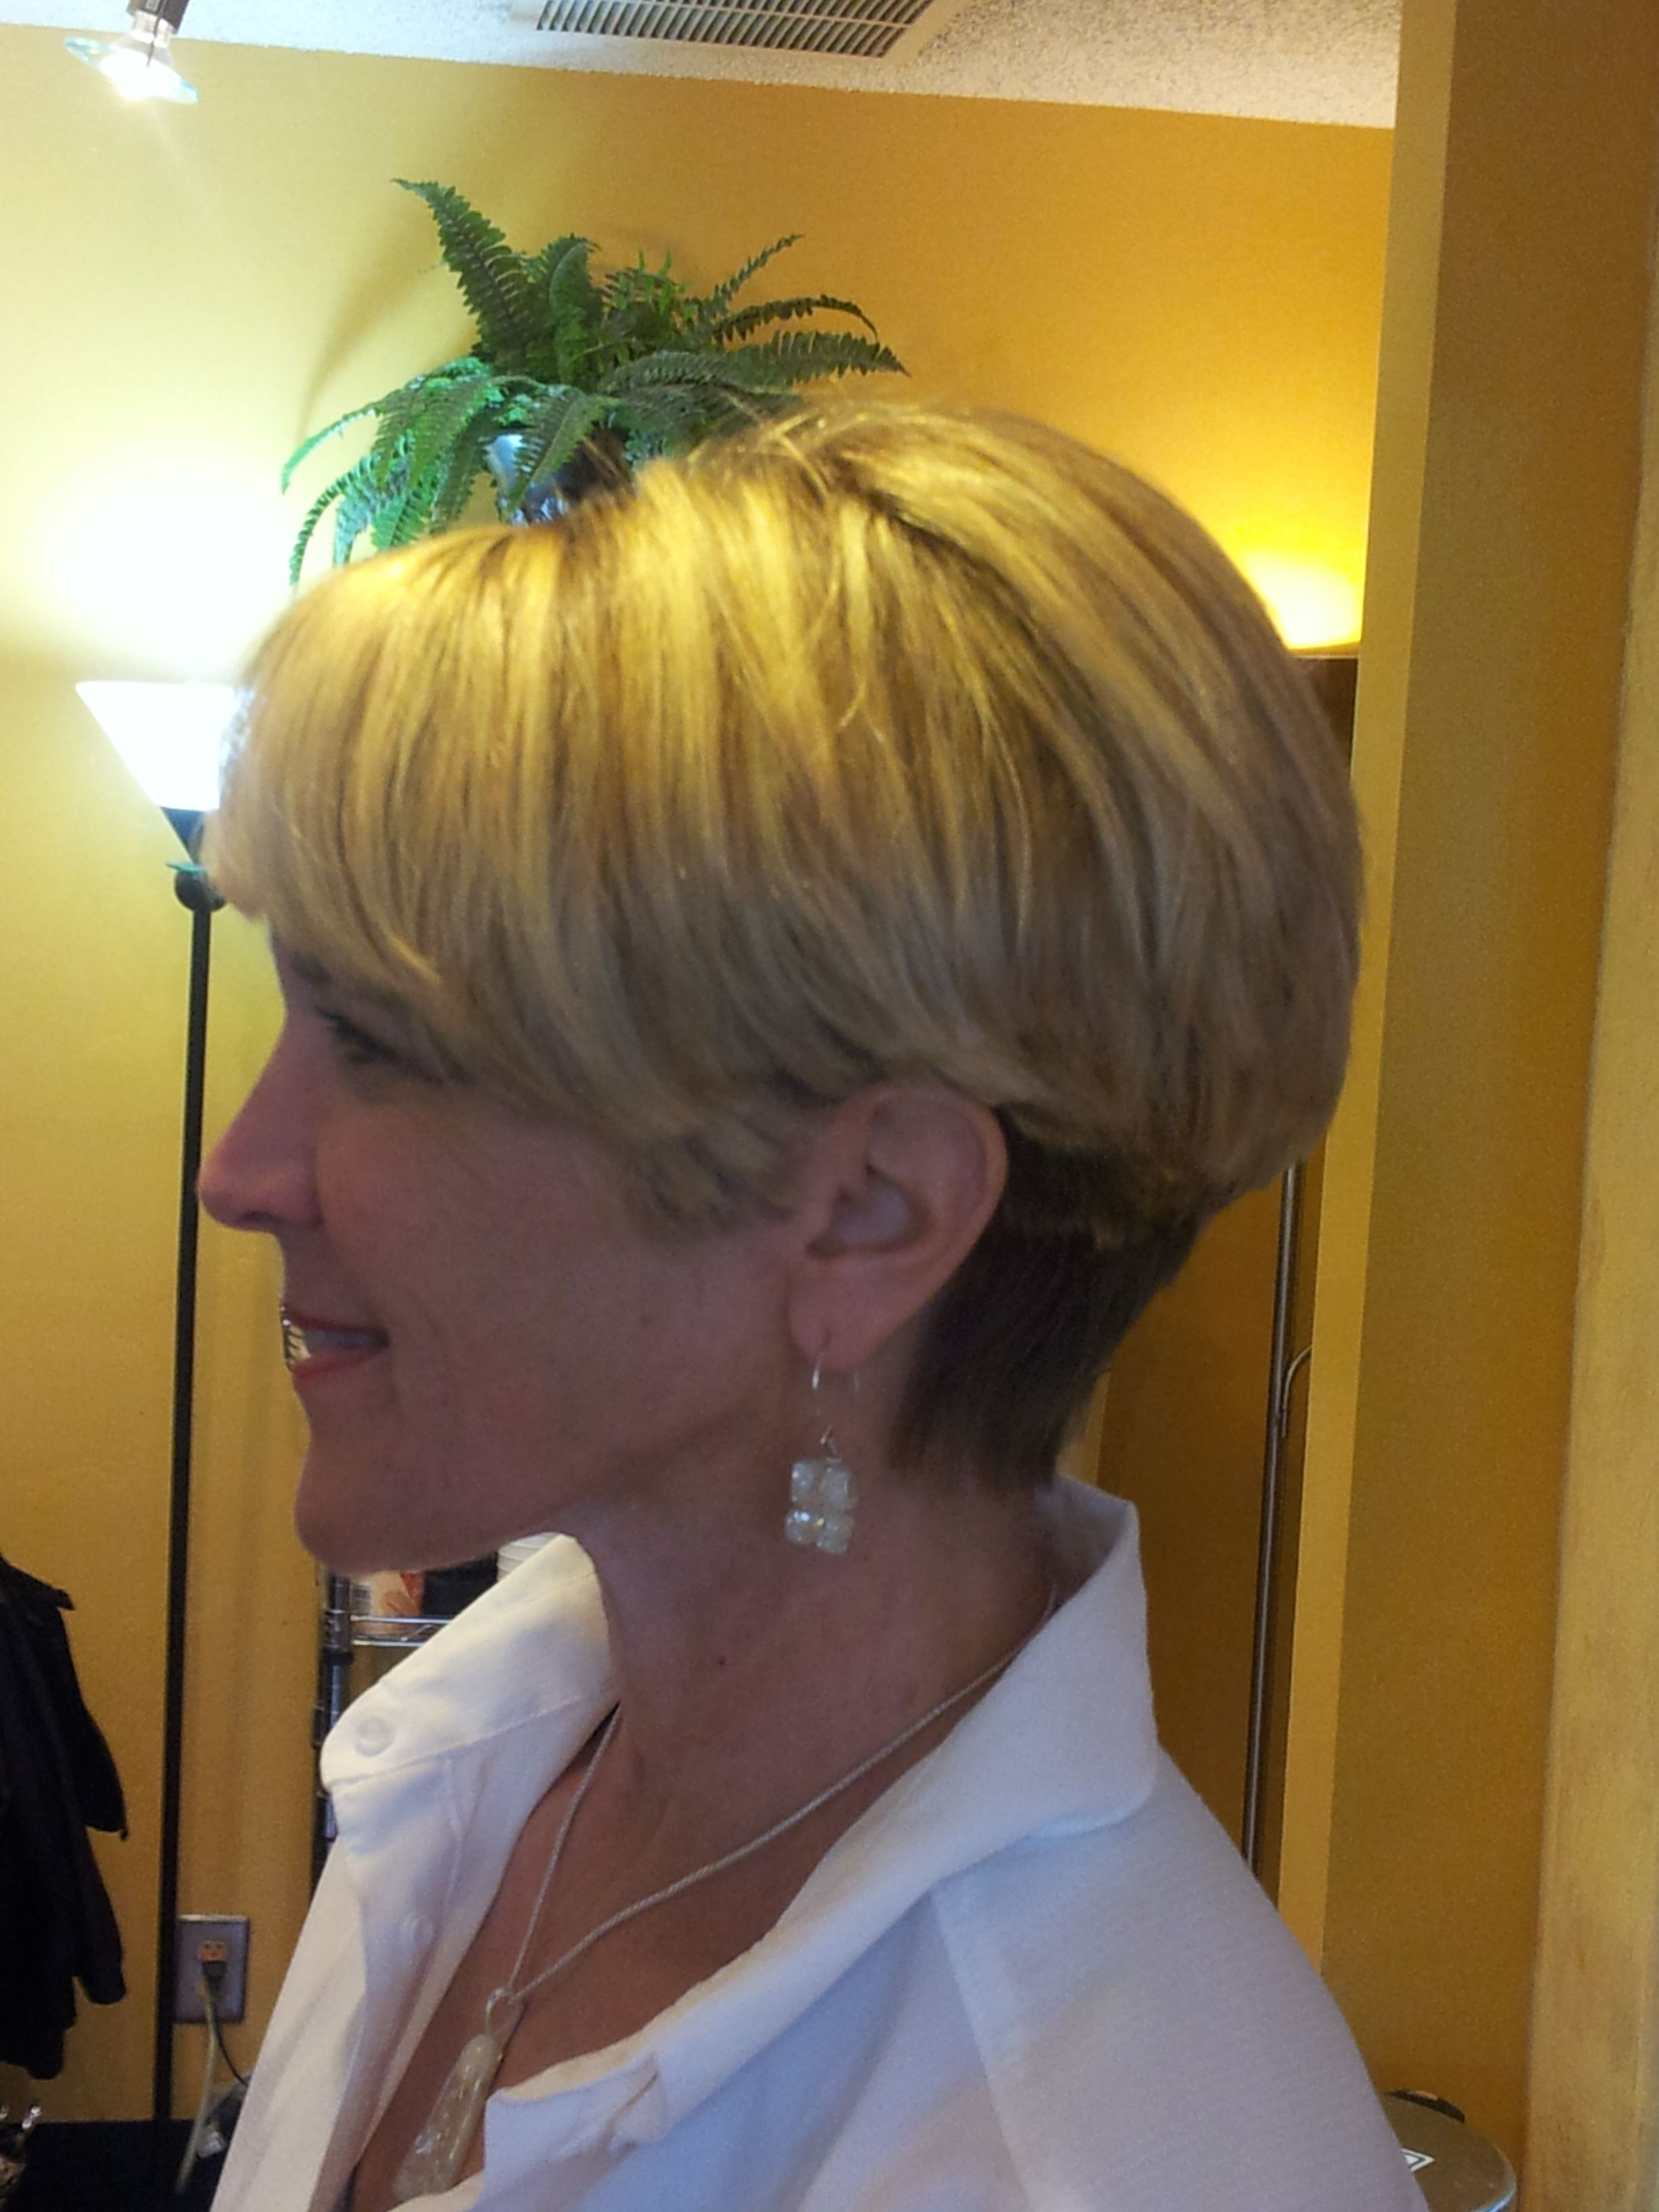 Salon Hairstyles For Short Hair Bonnie Wedge Haircut With Multicolor Weave Pazazz Salon